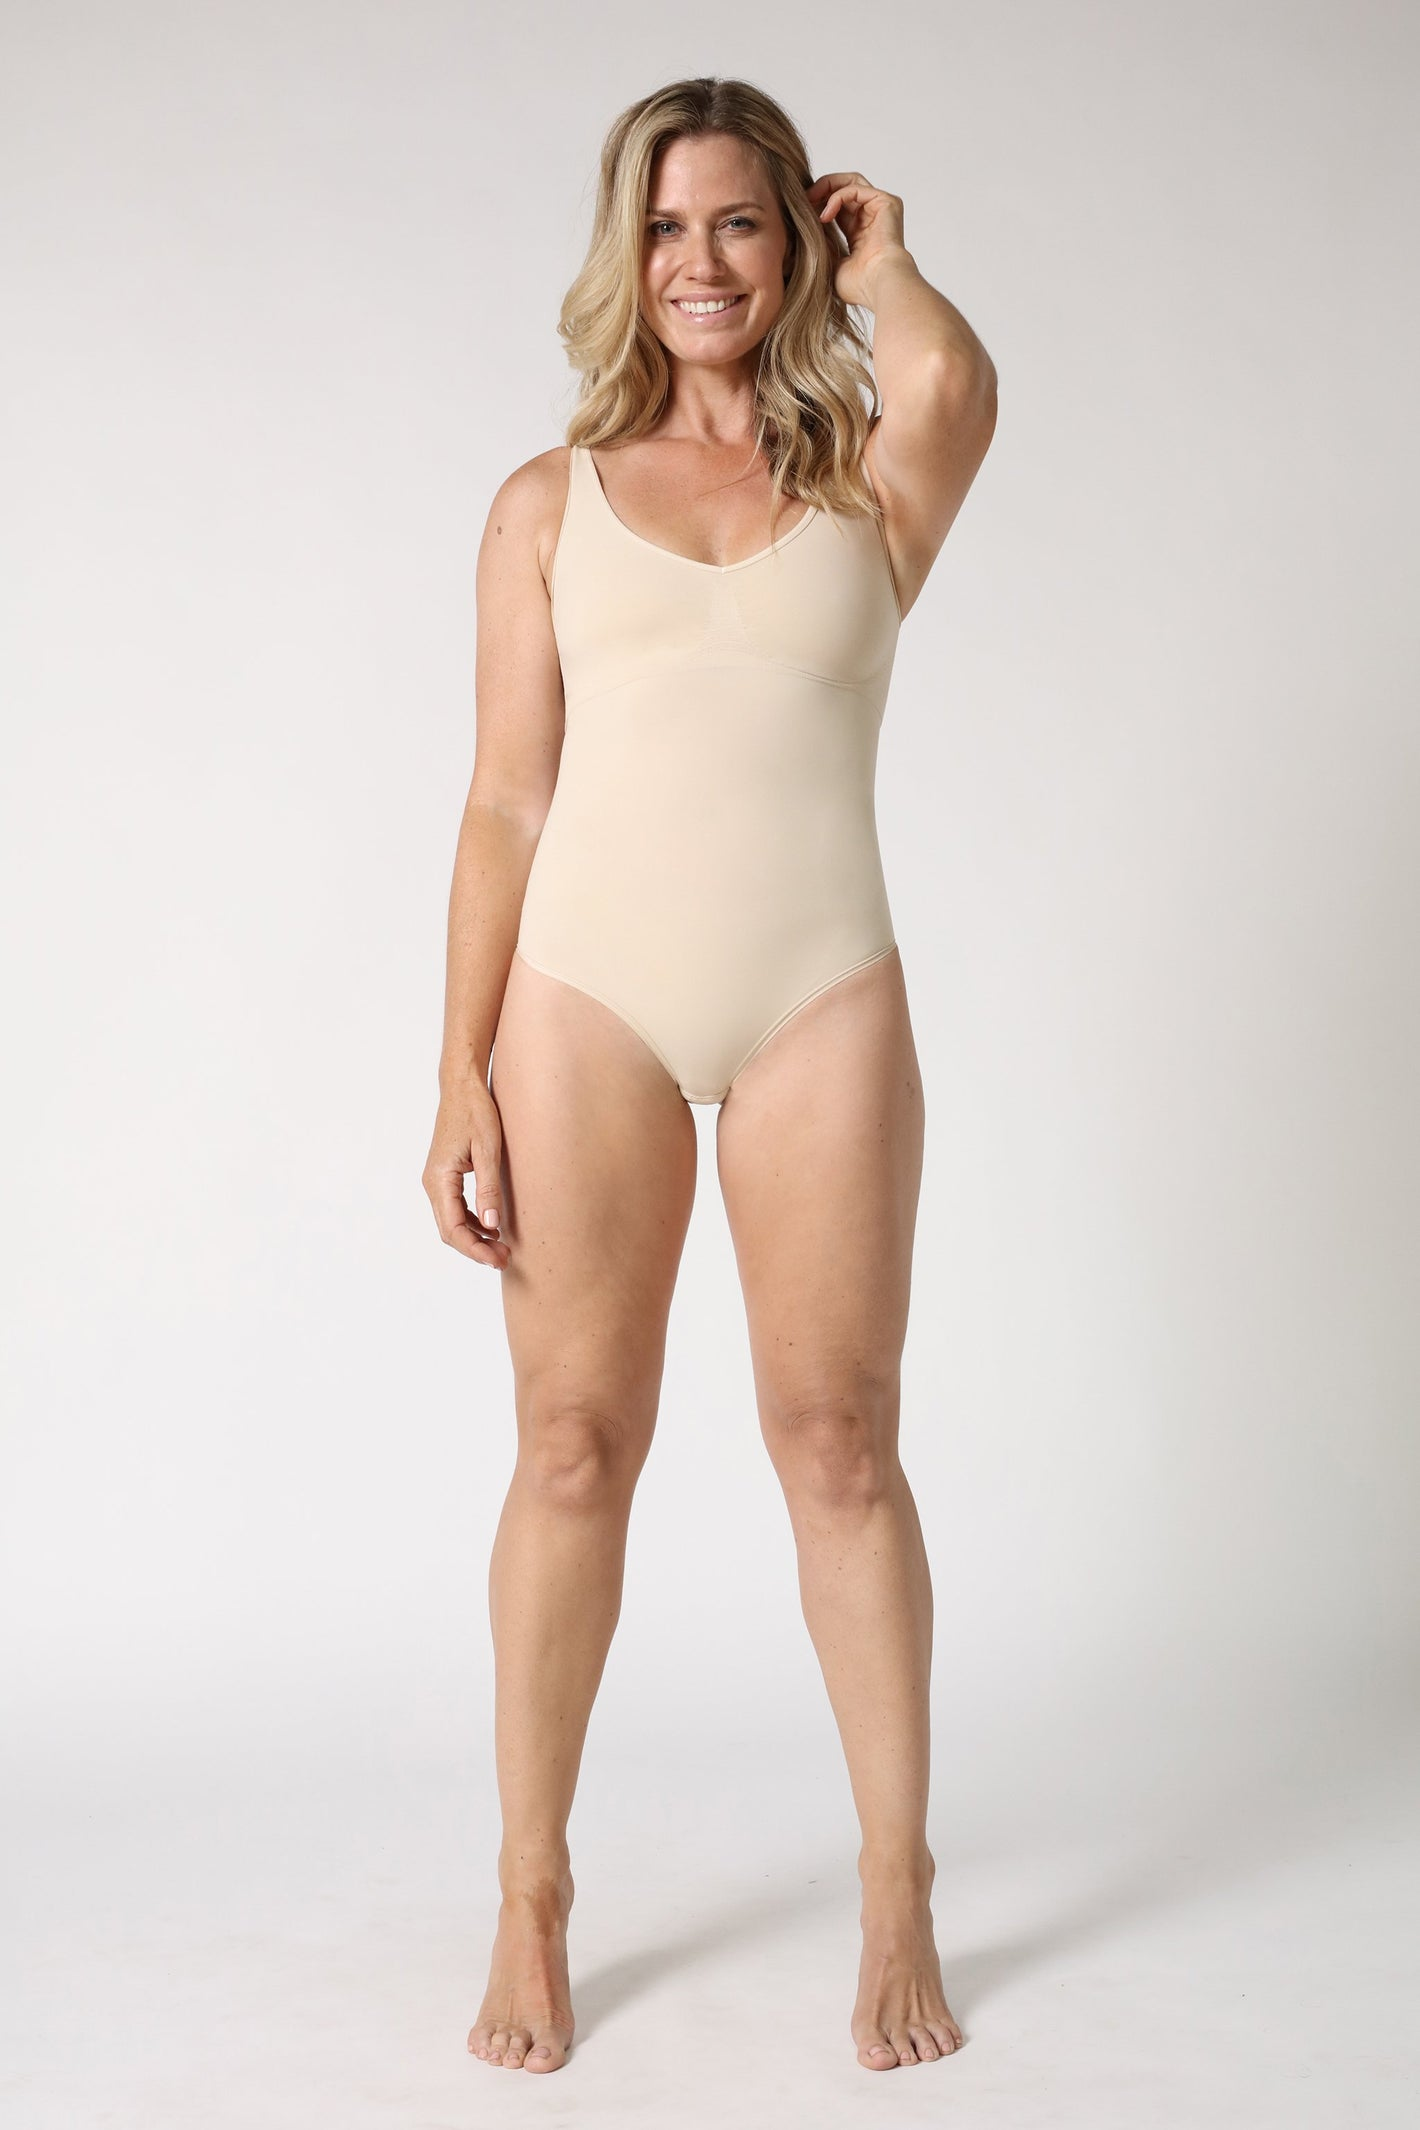 Sleex Shapewear Kollektion - Hautfarben